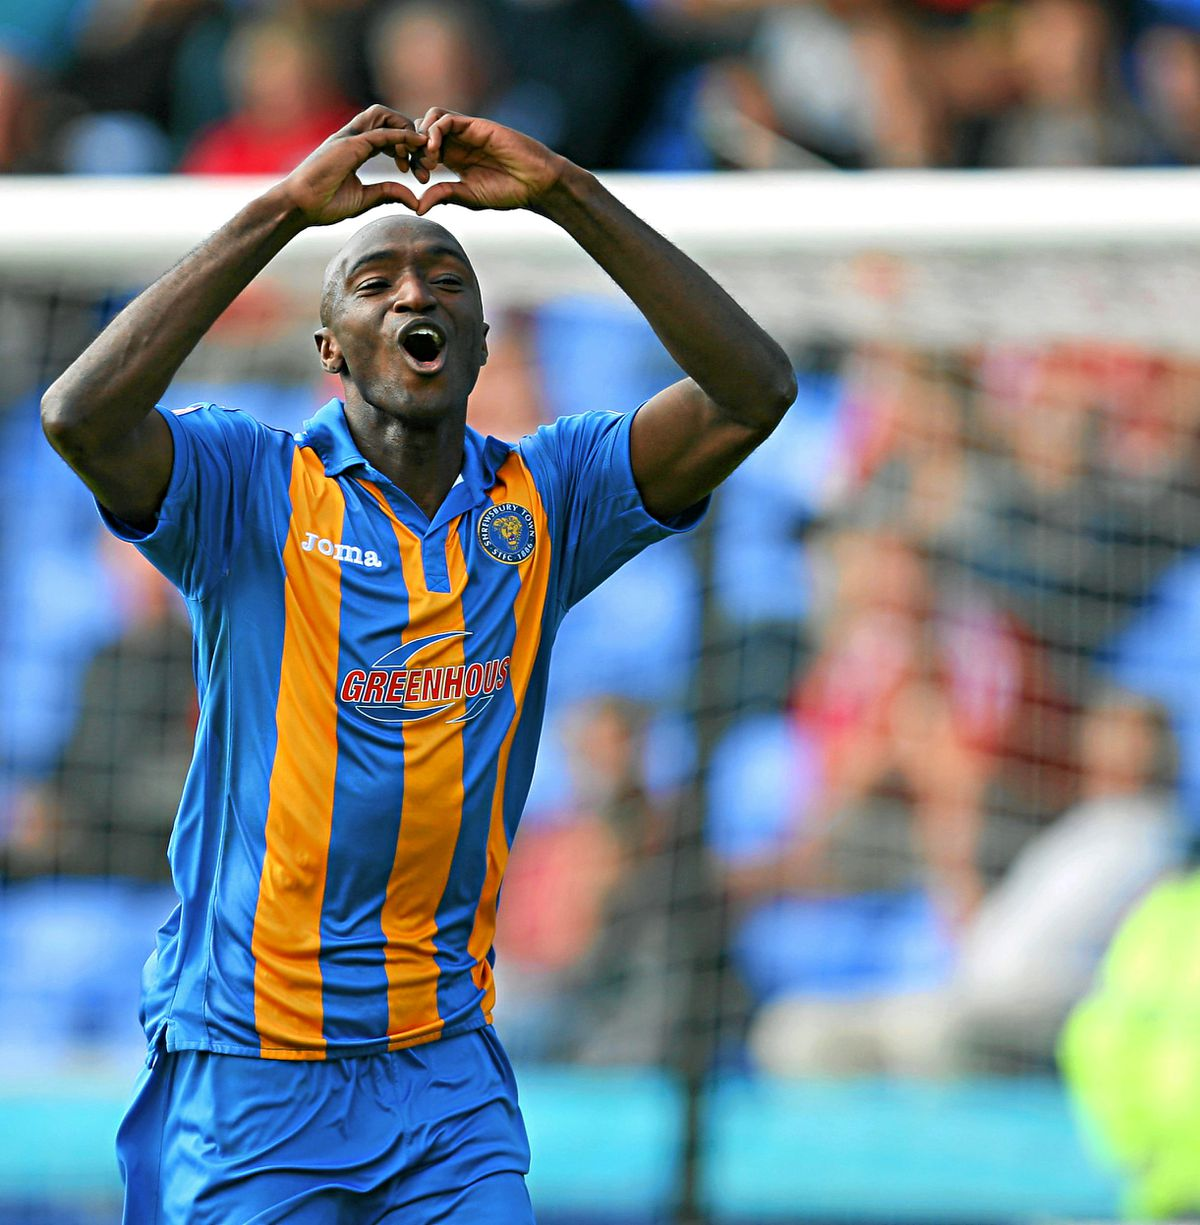 Marvin Morgan celebrates in Shrews blue and amber